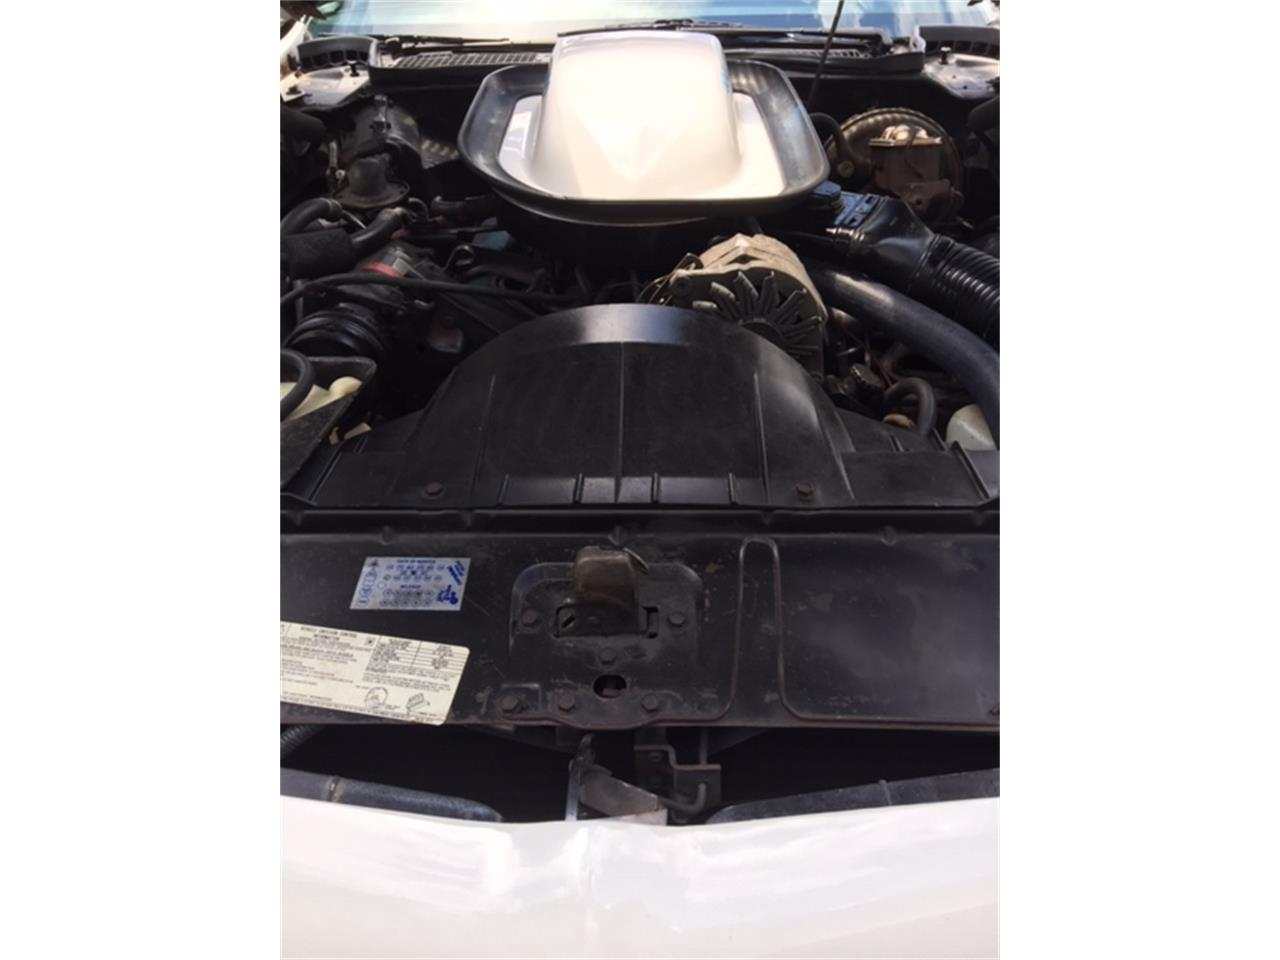 Large Picture of 1975 Pontiac Firebird Trans Am located in Franklinville New Jersey - $24,500.00 Offered by a Private Seller - QKWB